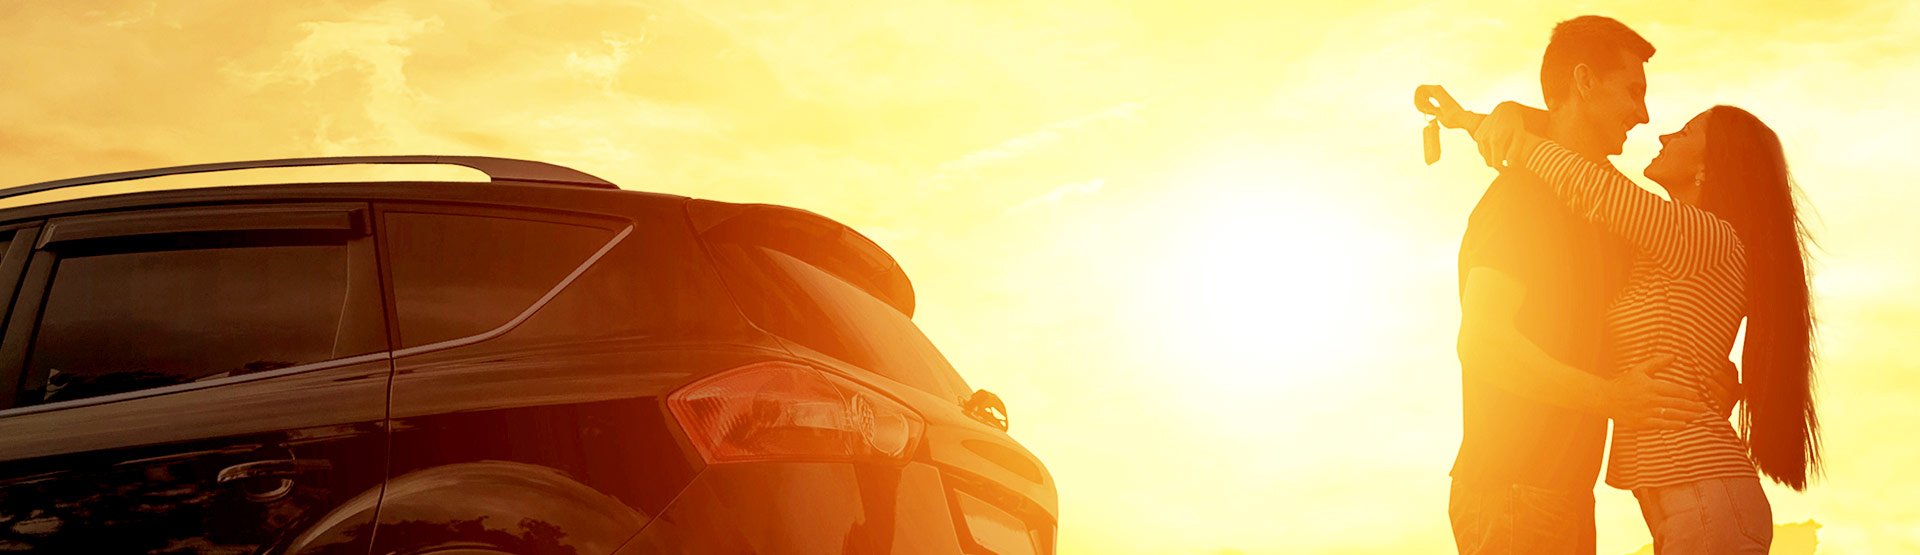 Get behind the wheel of your new car today with a Sun East Car Loan